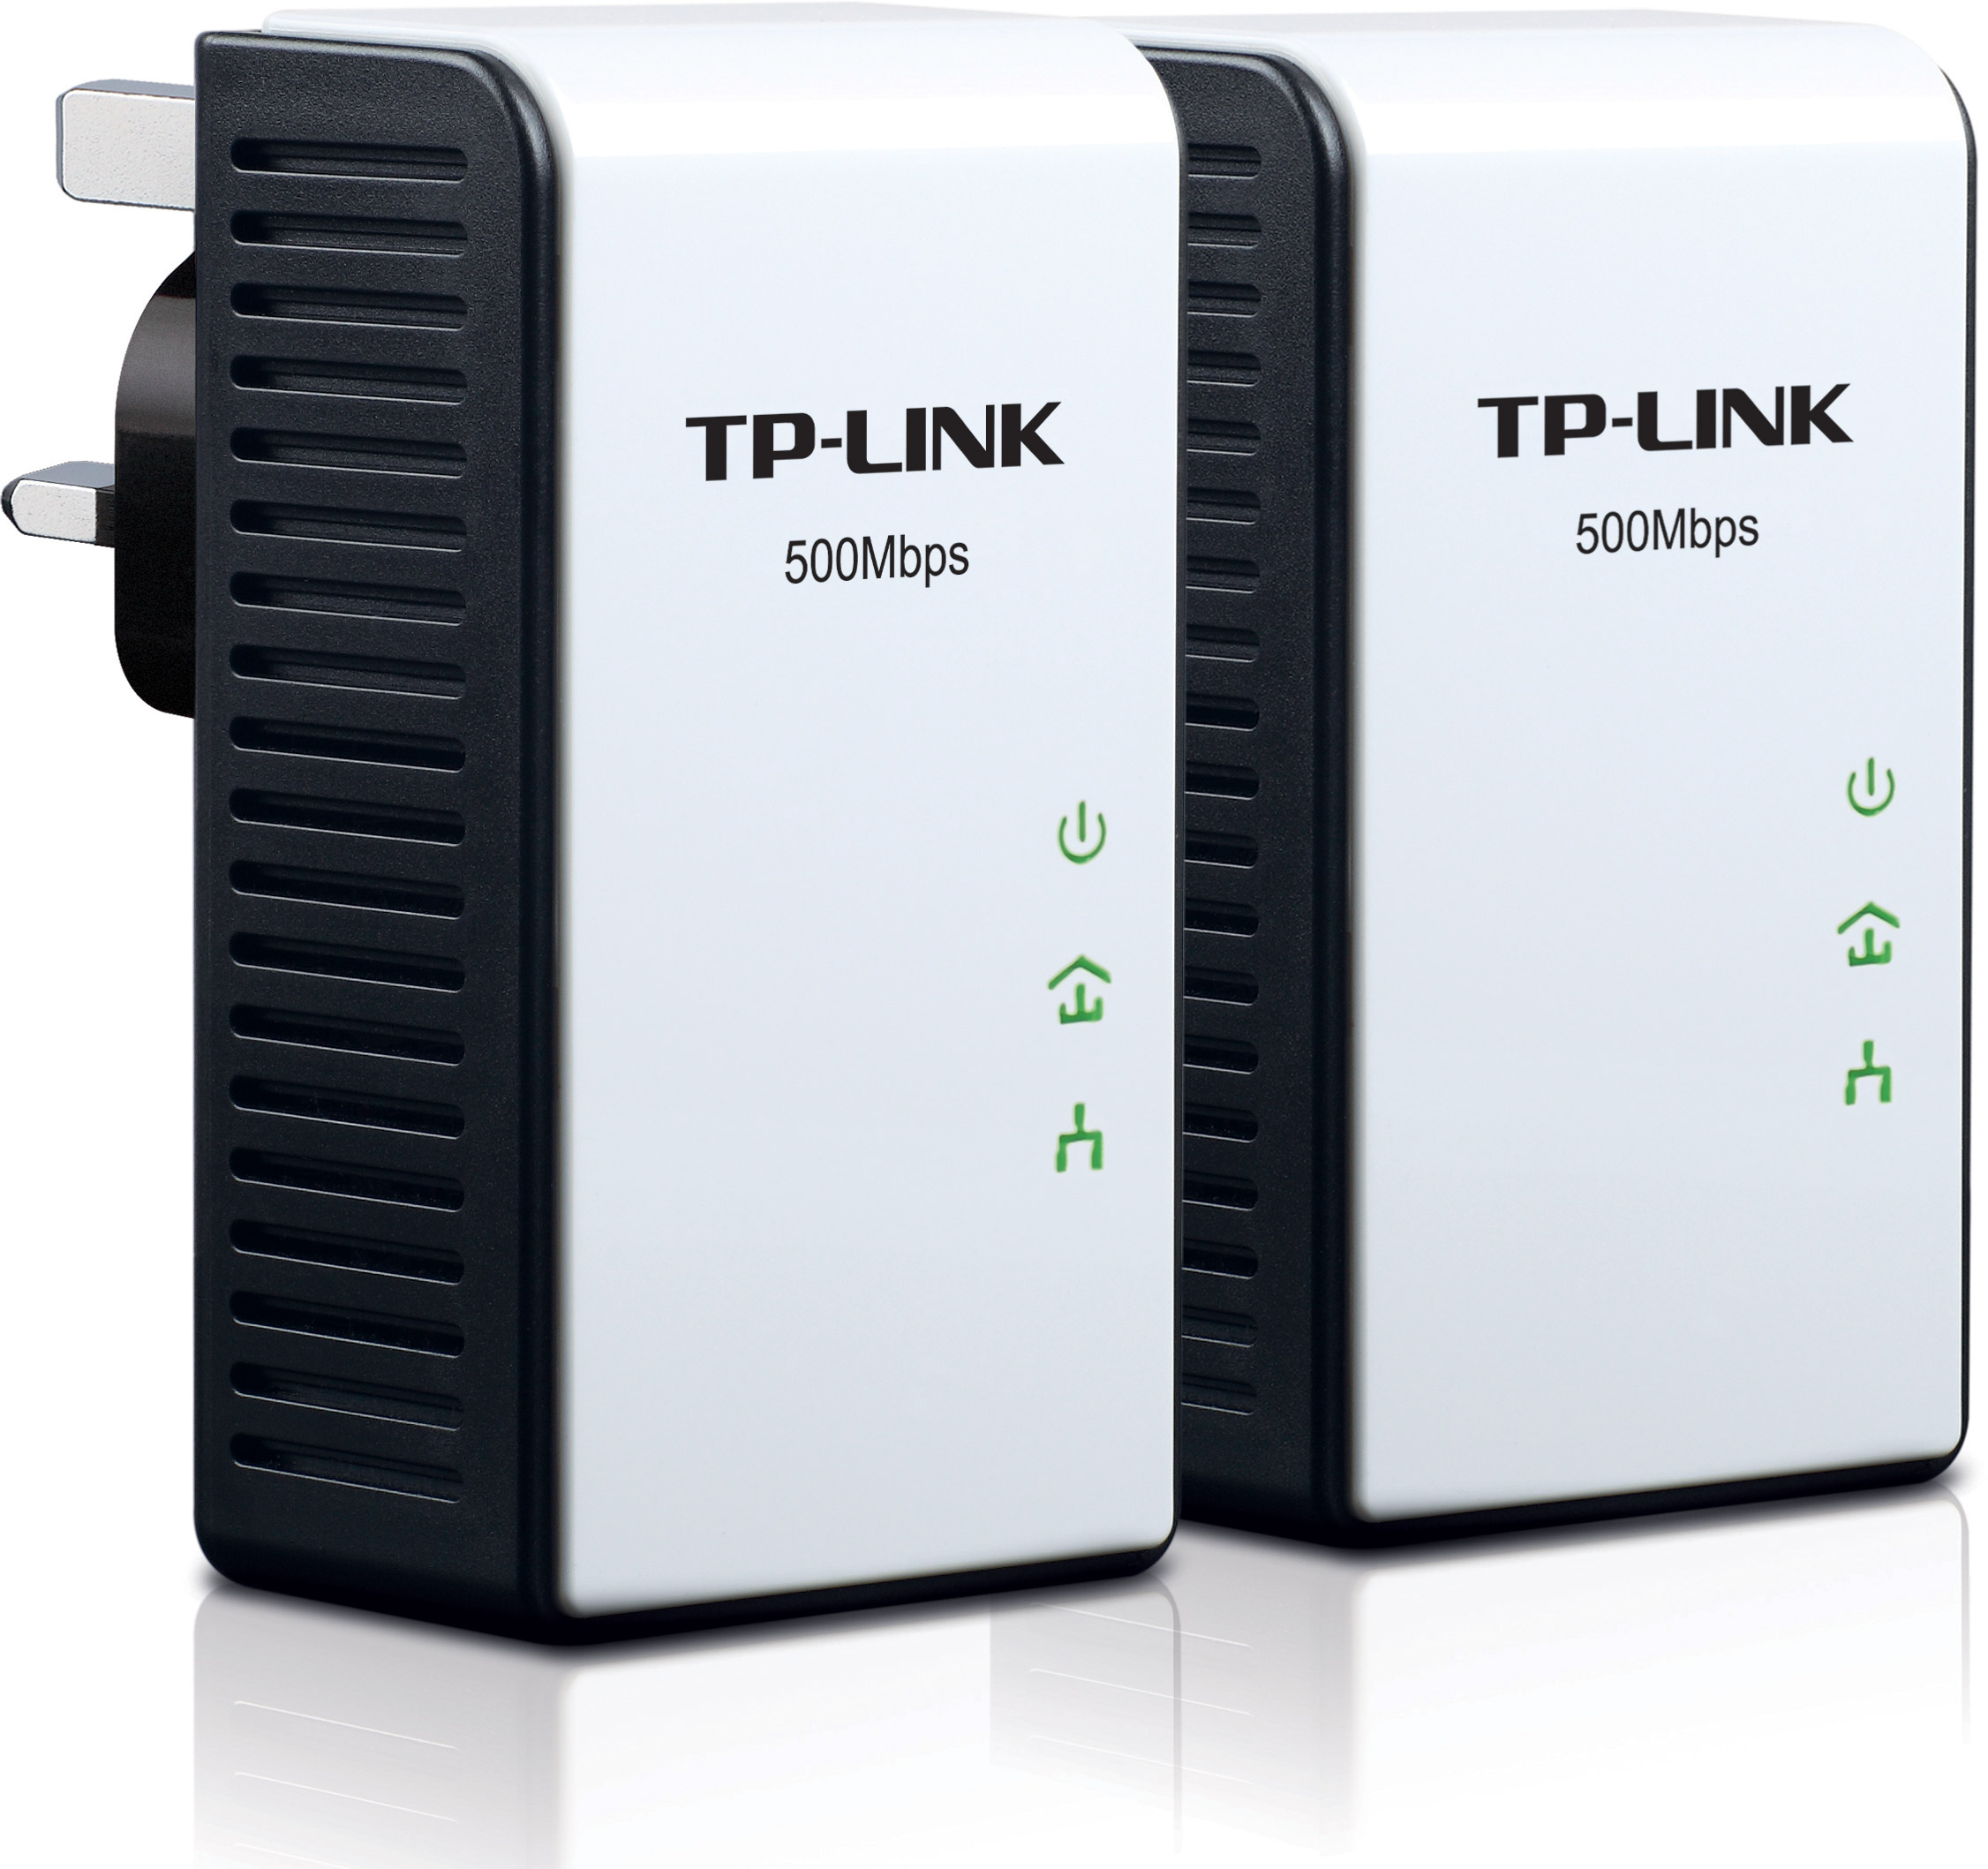 ... Gigabit Powerline Adapter Starter Kit TL-PA511KIT - Welcome to TP-LINK